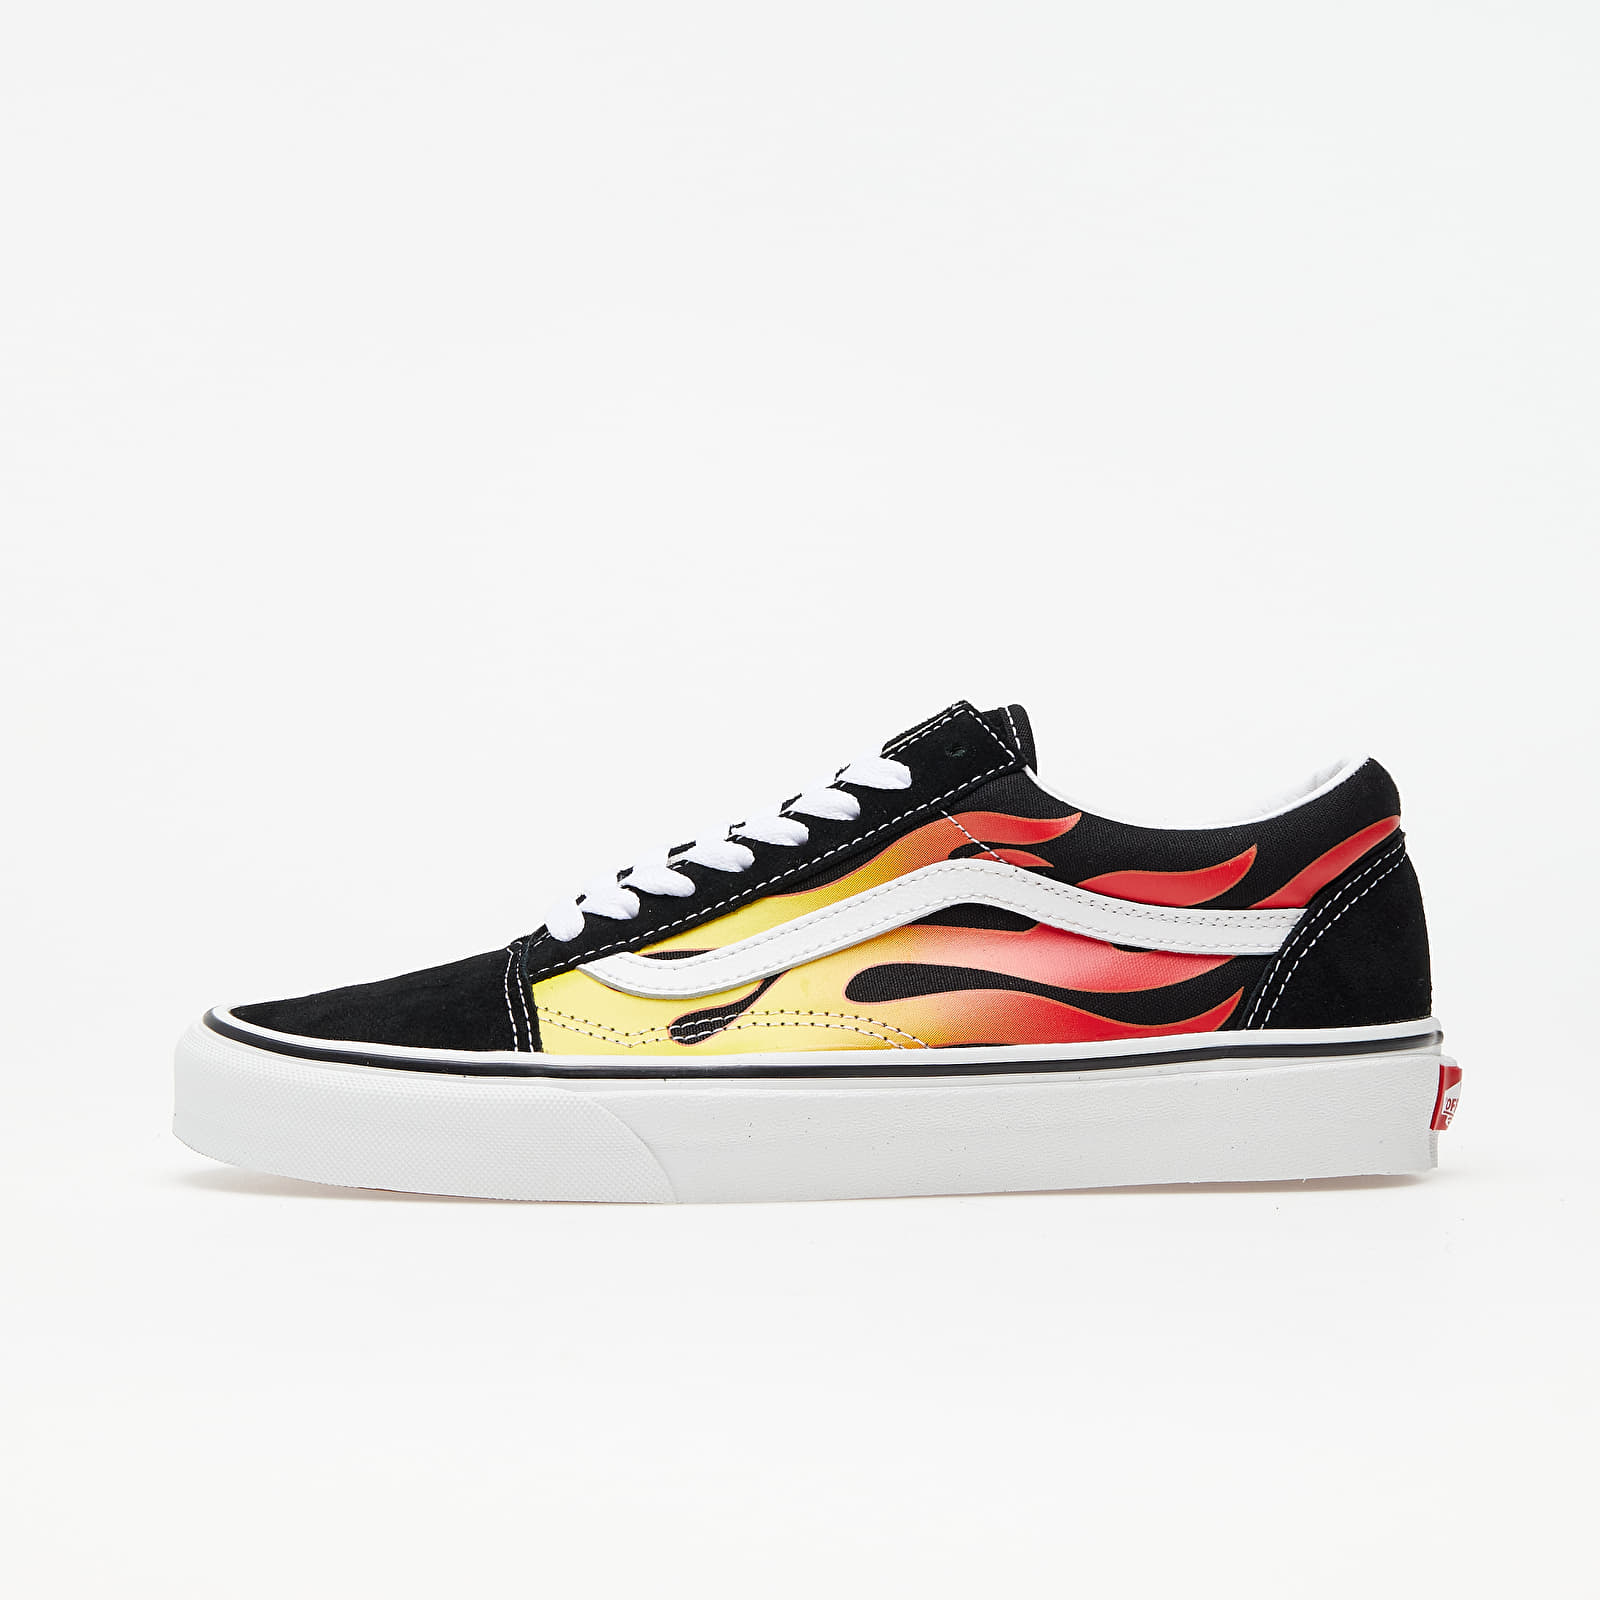 Vans Old Skool (Flame) Black/ Black/ True White EUR 42.5